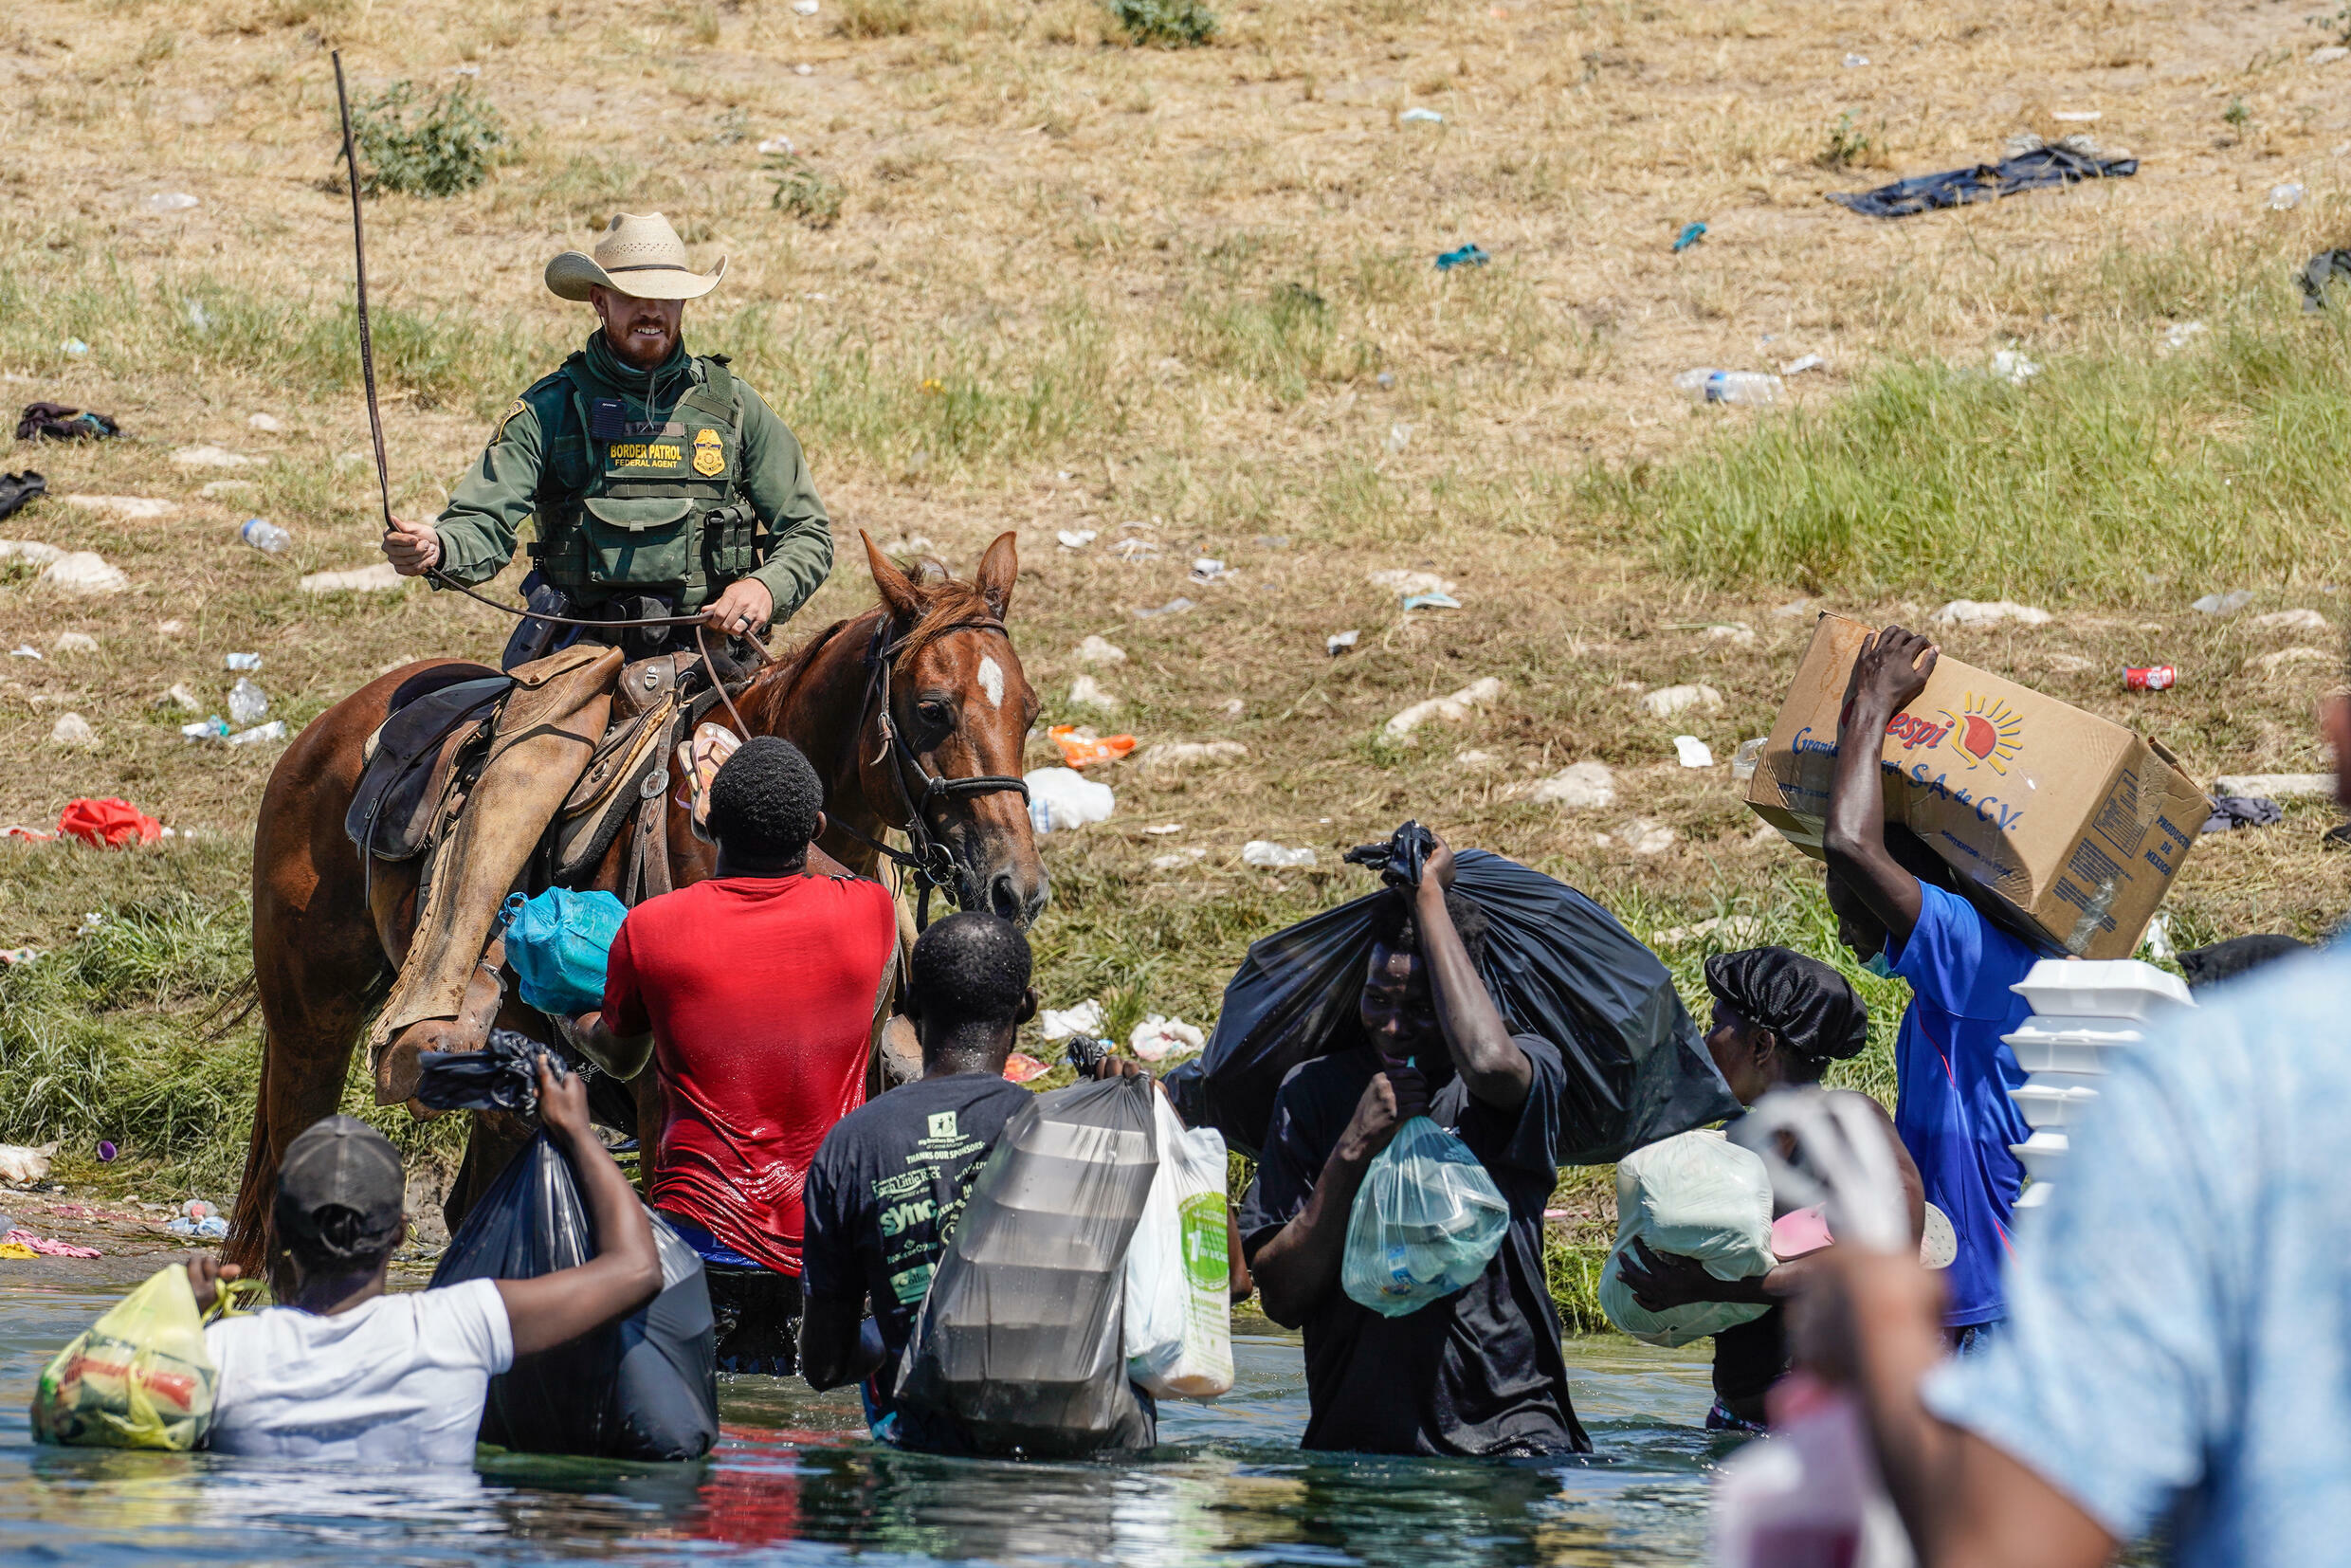 A United States Border Patrol agent on horseback uses his reins as he tries to stop Haitian migrants from entering an encampment on the banks of the Rio Grande near the Acuna Del Rio International Bridge in Del Rio, Texas